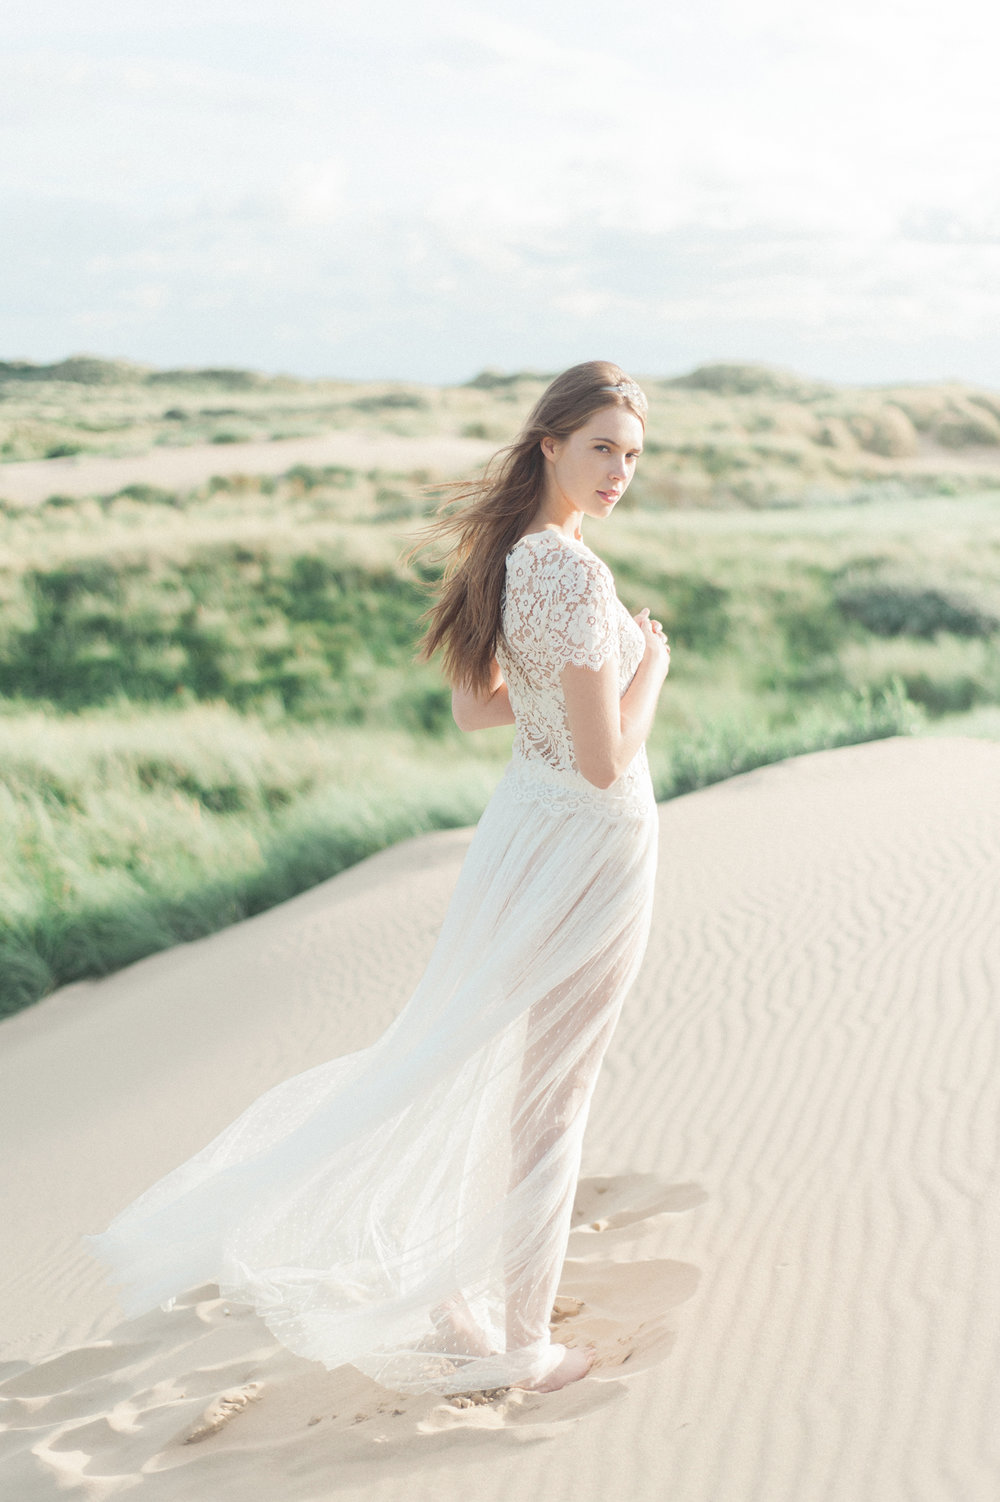 Kate-Beaumont-Wedding-Dresses-Formby-Beach-Emma-Pilkington-15.jpg